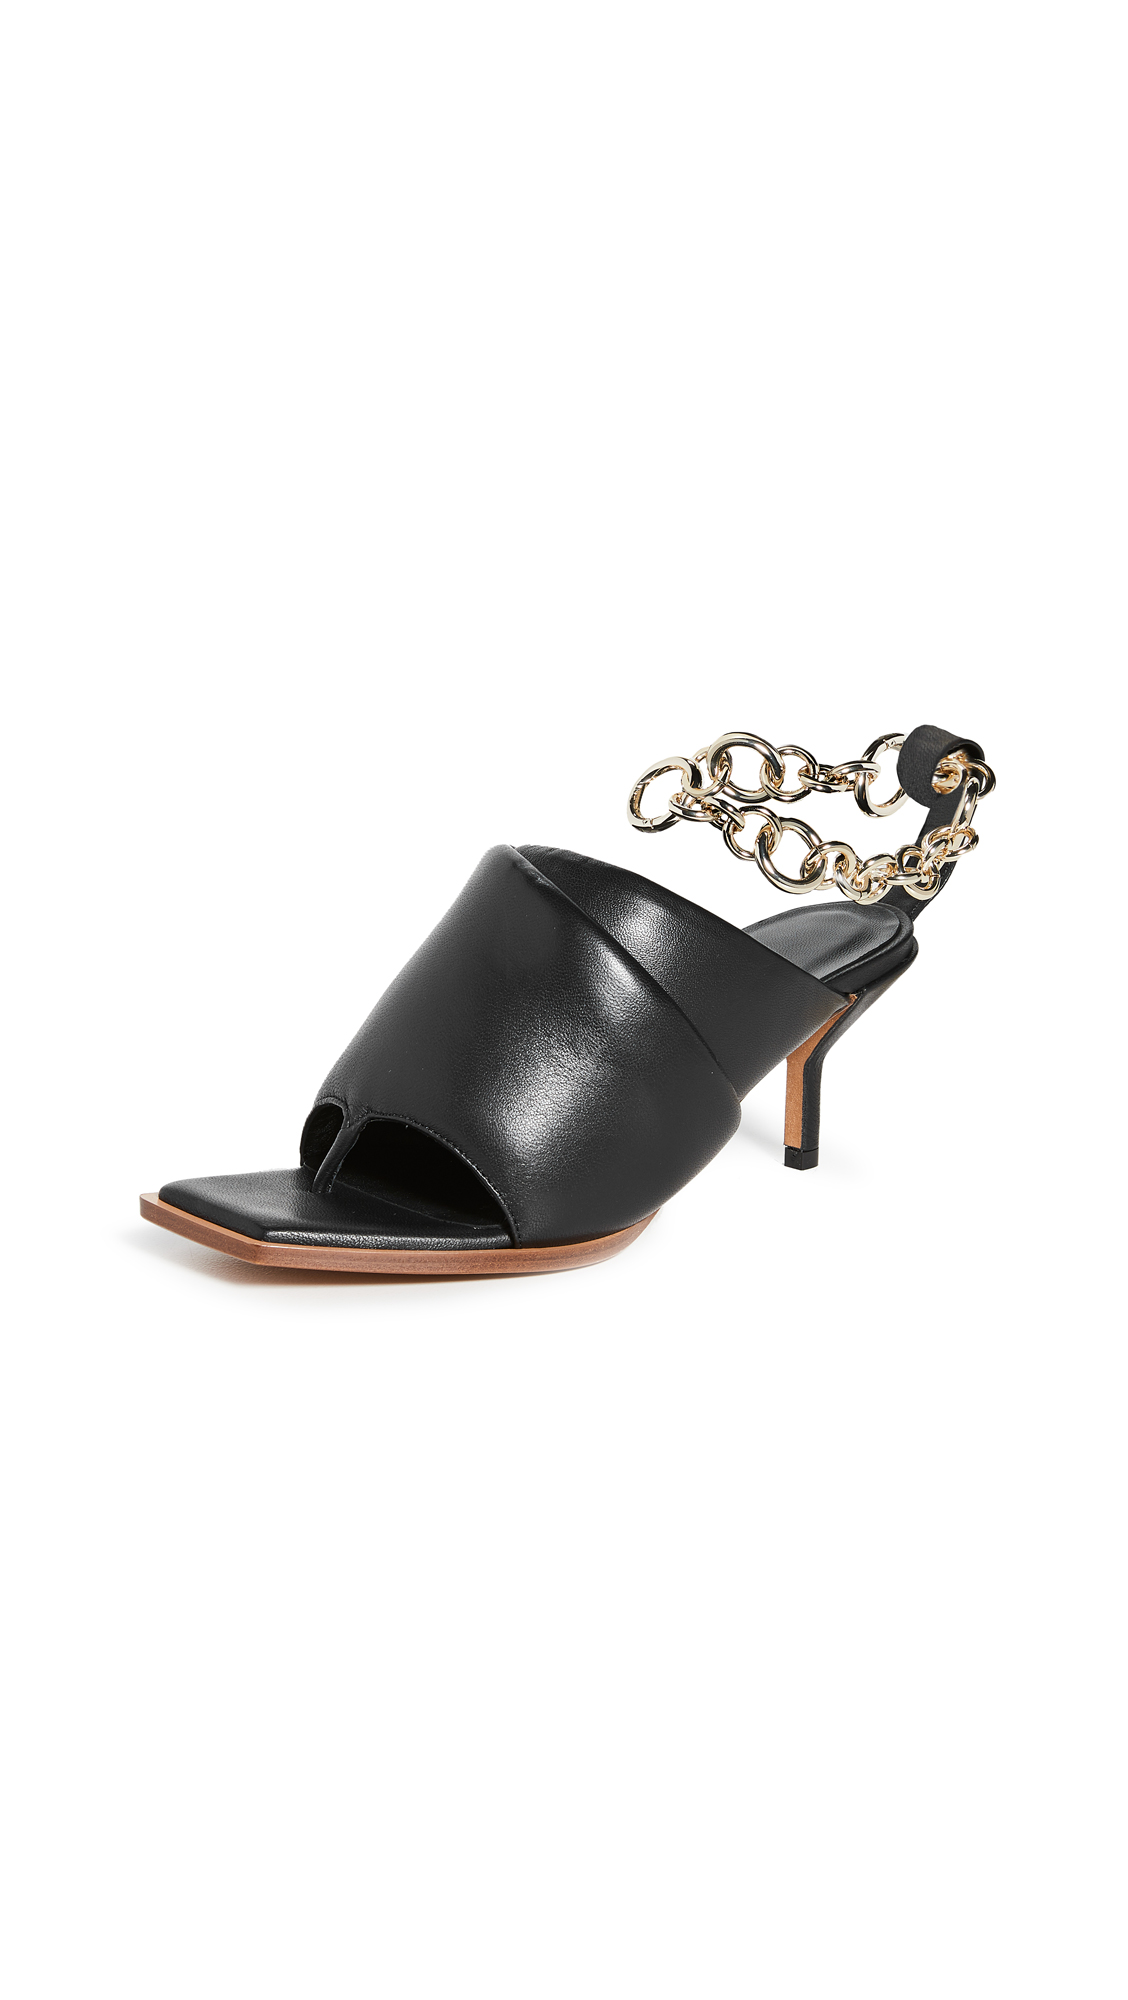 3.1 Phillip Lim Georgia 60mm Padded Mules W Chain